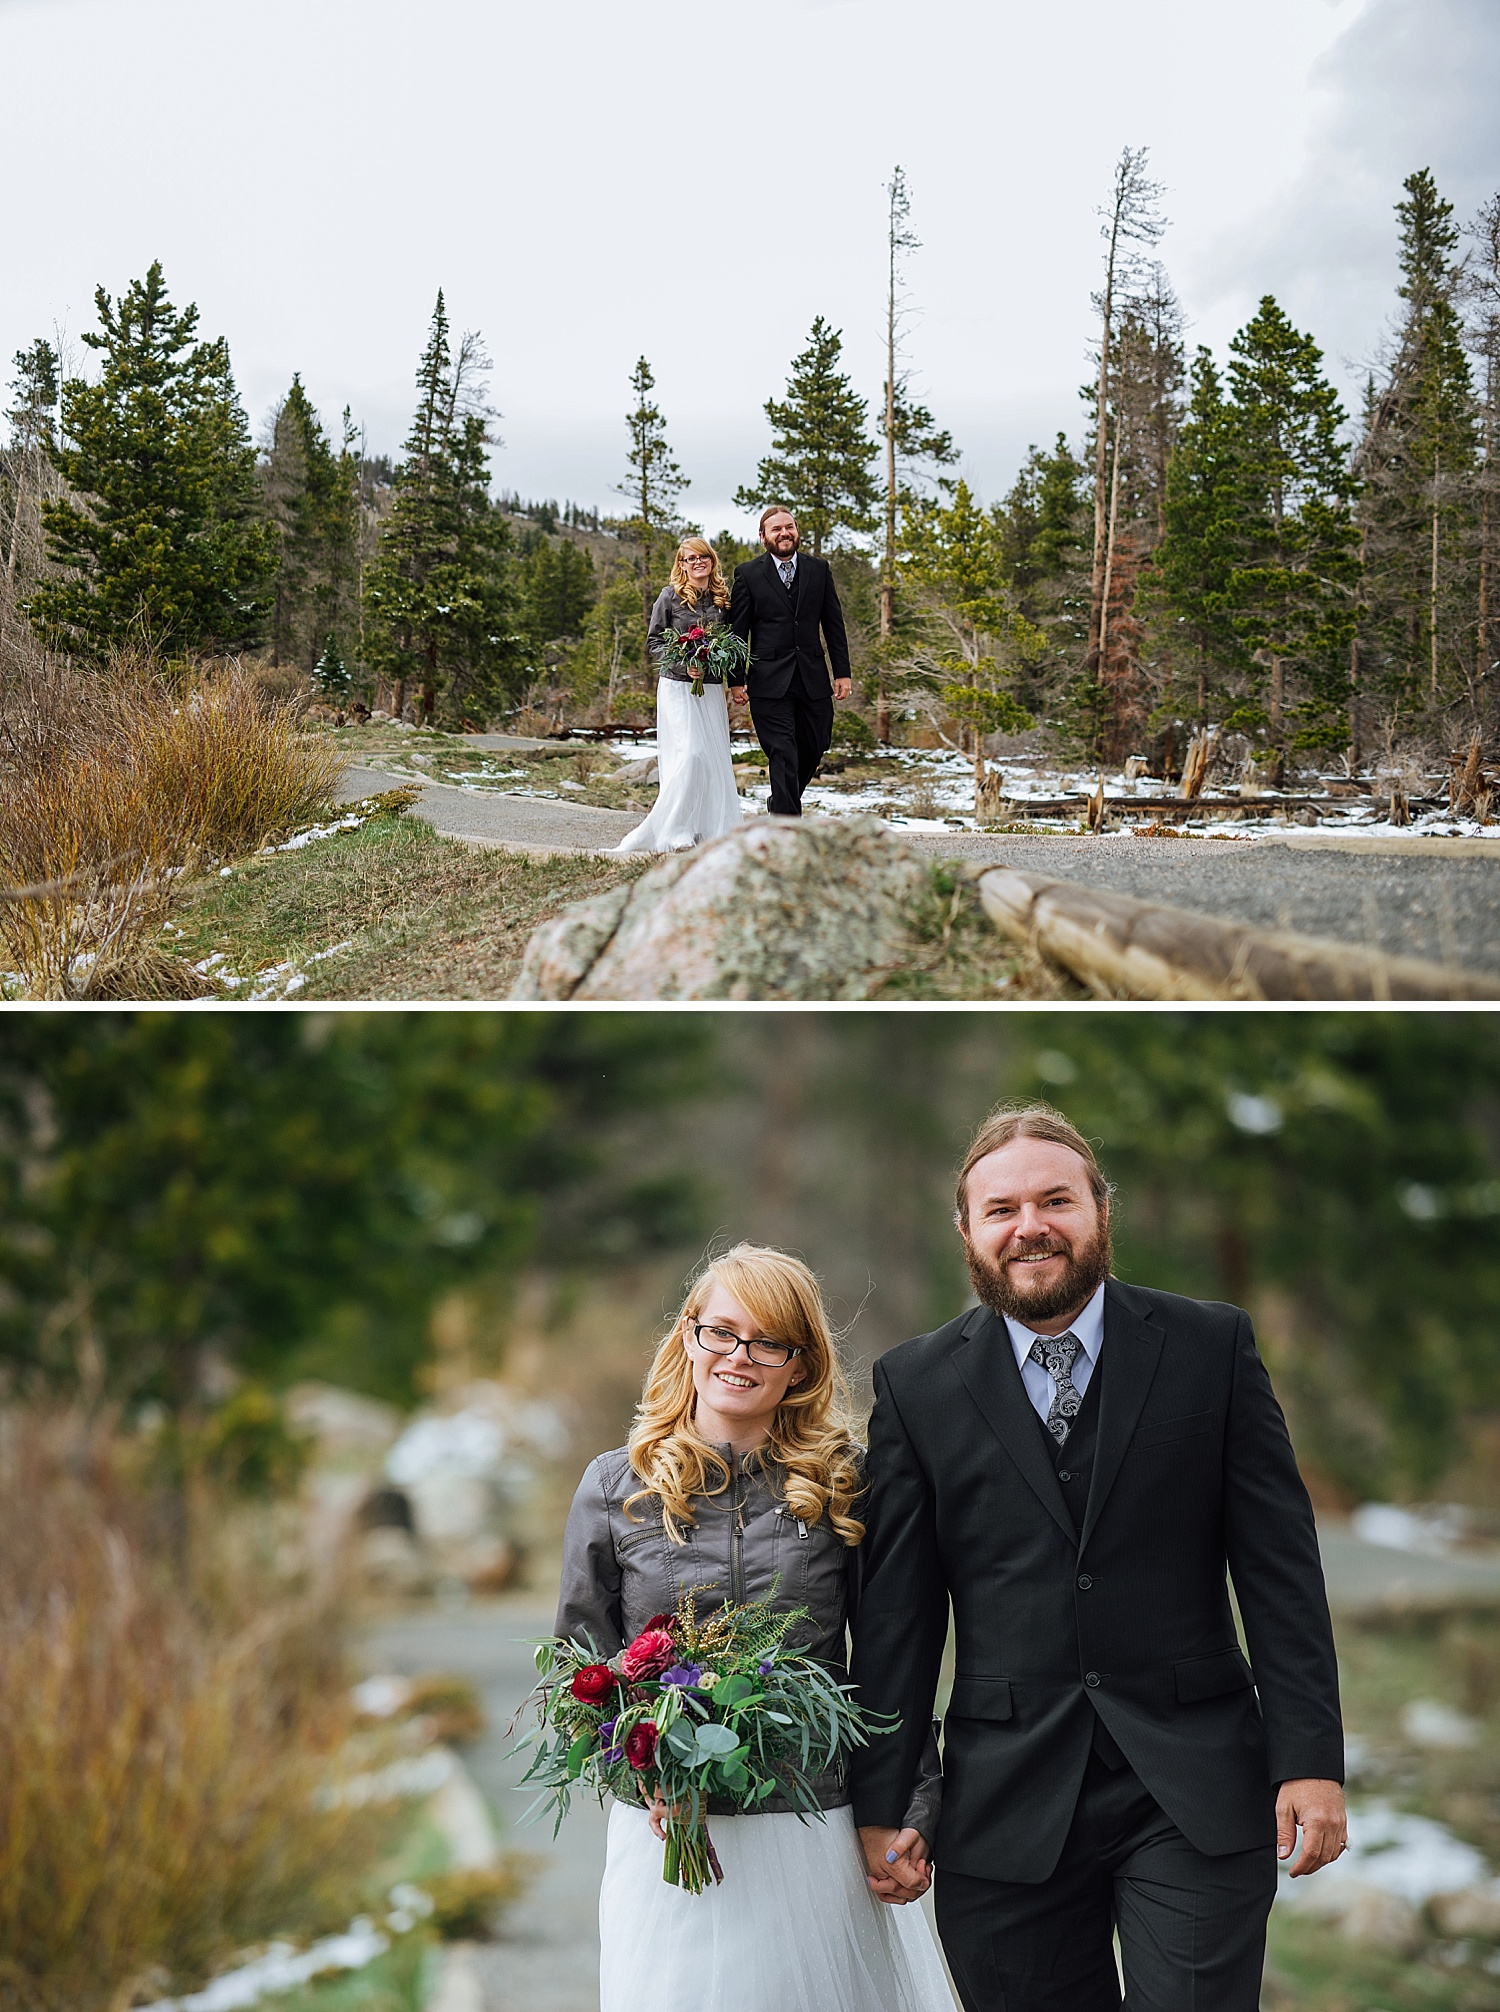 I love how she decided to wear a jacket over her dress! I think that is so smart, especially for a winter, mountain wedding. Photo by Maddie Mae Photography